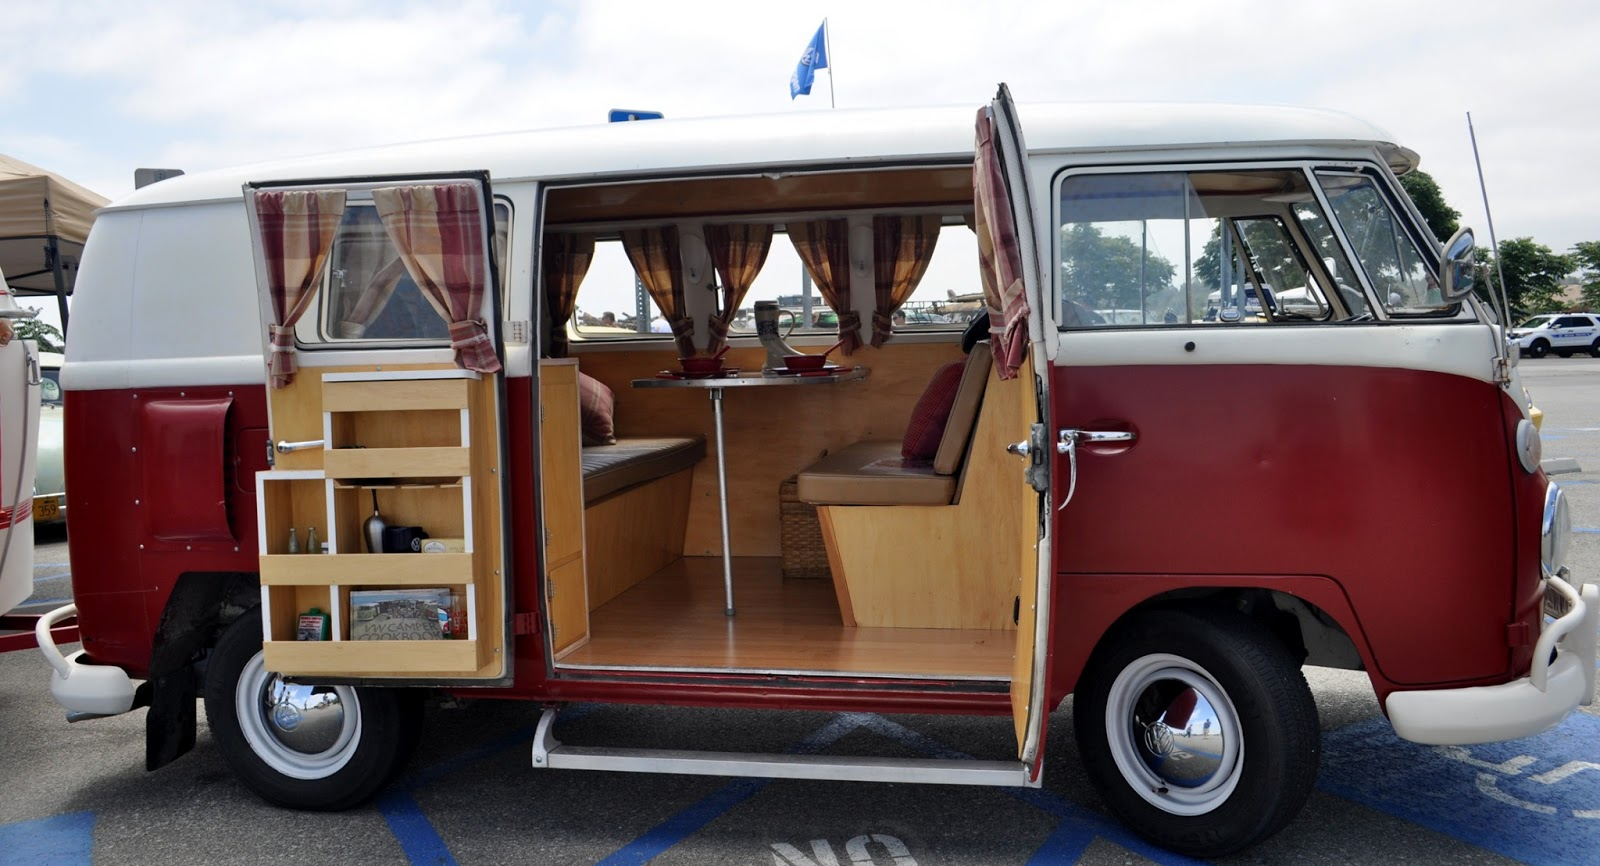 Some Of The Nicest Vw Bus Interiors From Yesterdays Bugorama At Irvine Verizon Amphitheater